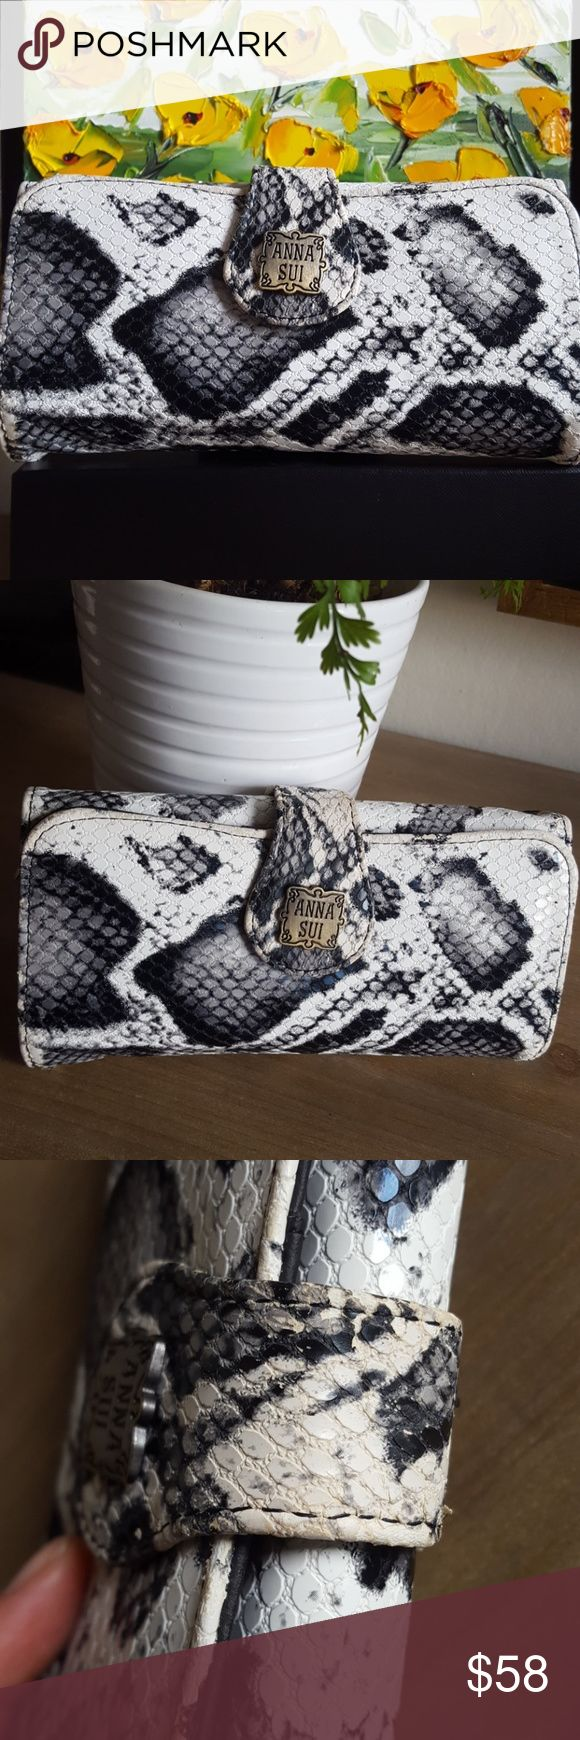 Anna Sui Python Print Wallet 🐍 Adorable black and white python print wallet from Anna Sui.  Perfect for all your everyday needs, this piece is a great companion in basic colors.  The inside is made of a thinner nylon to keep a low profile, and will keep your ID safe in sight.  Slight signs of wear at opening tab, and small flecks of the white finish apparent inside, though the wallet is unused.  Super cute! Anna Sui Bags Wallets